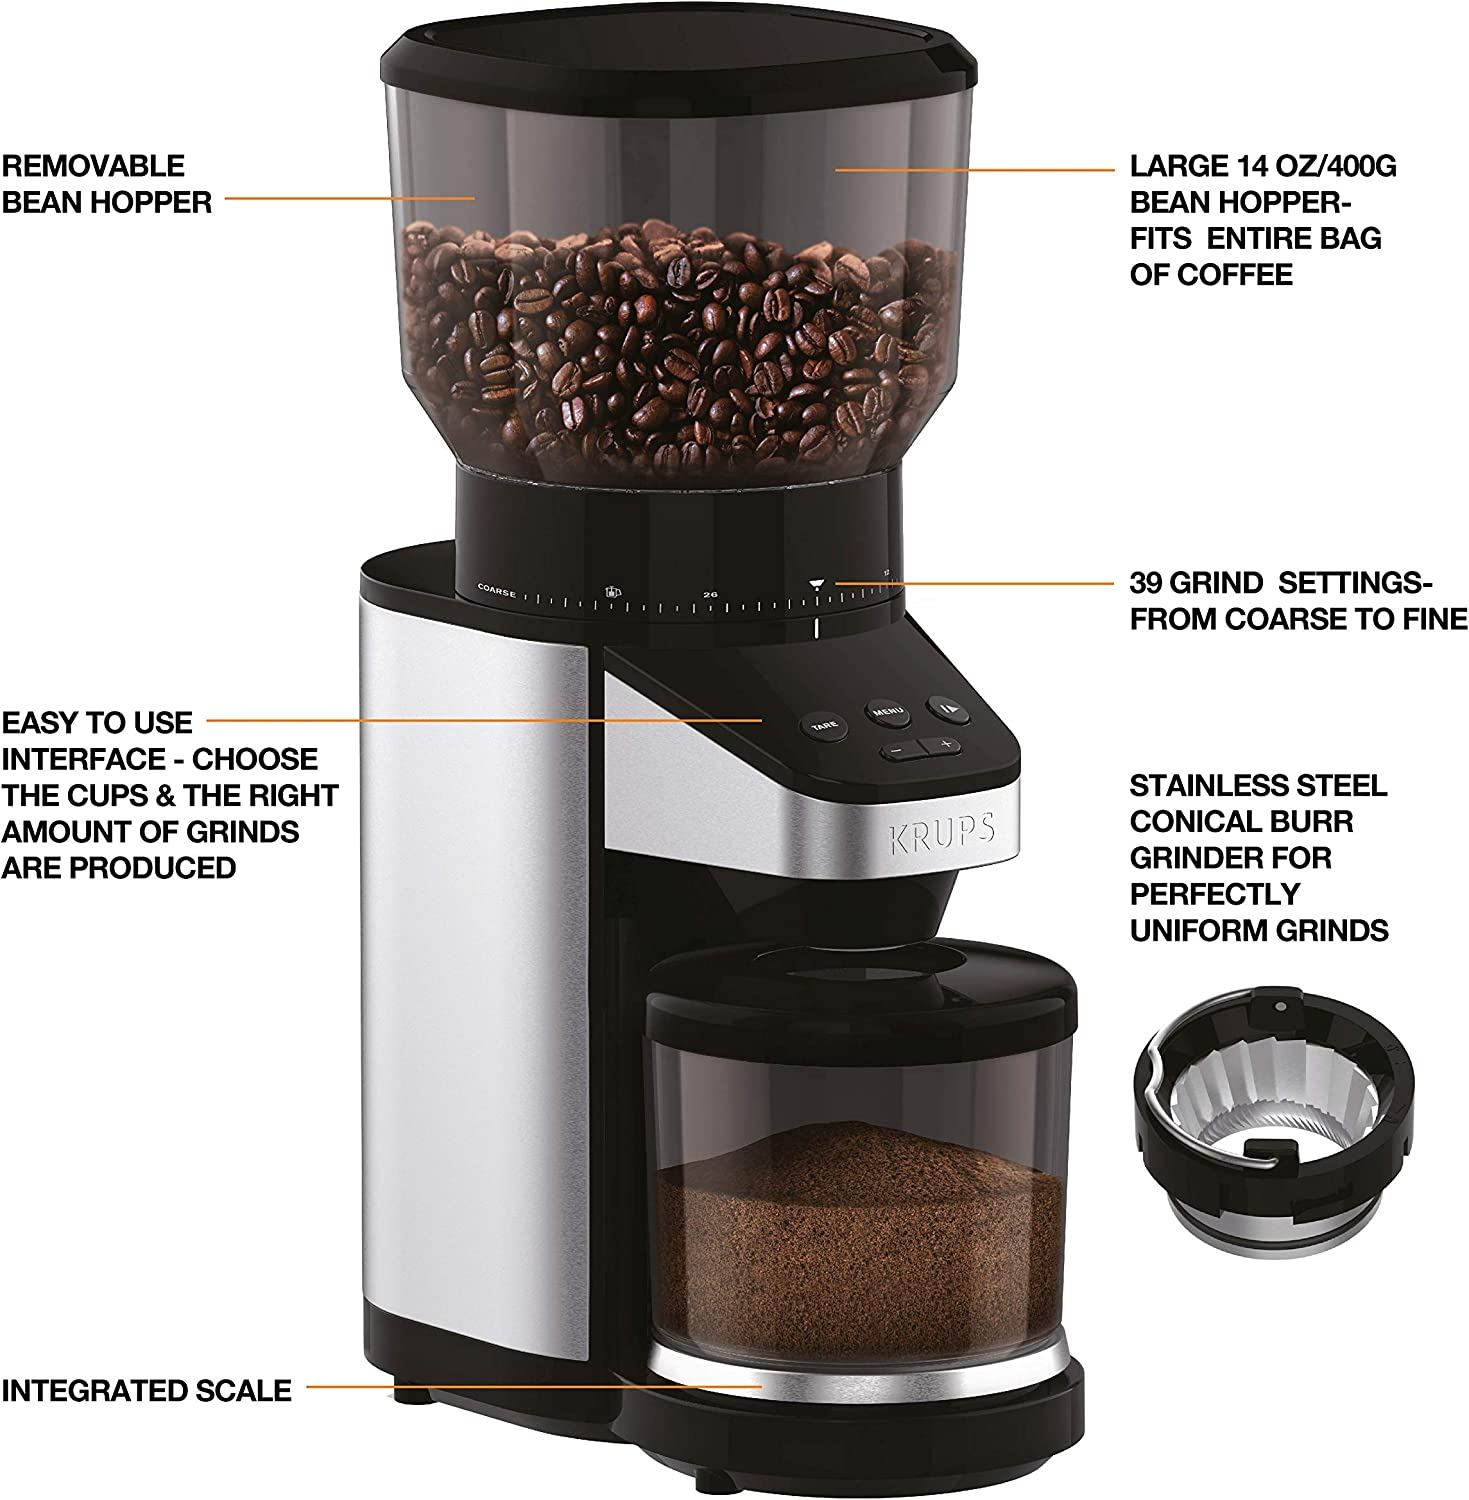 Krups Expert Burr Coffee Grinder krups gx420851 review